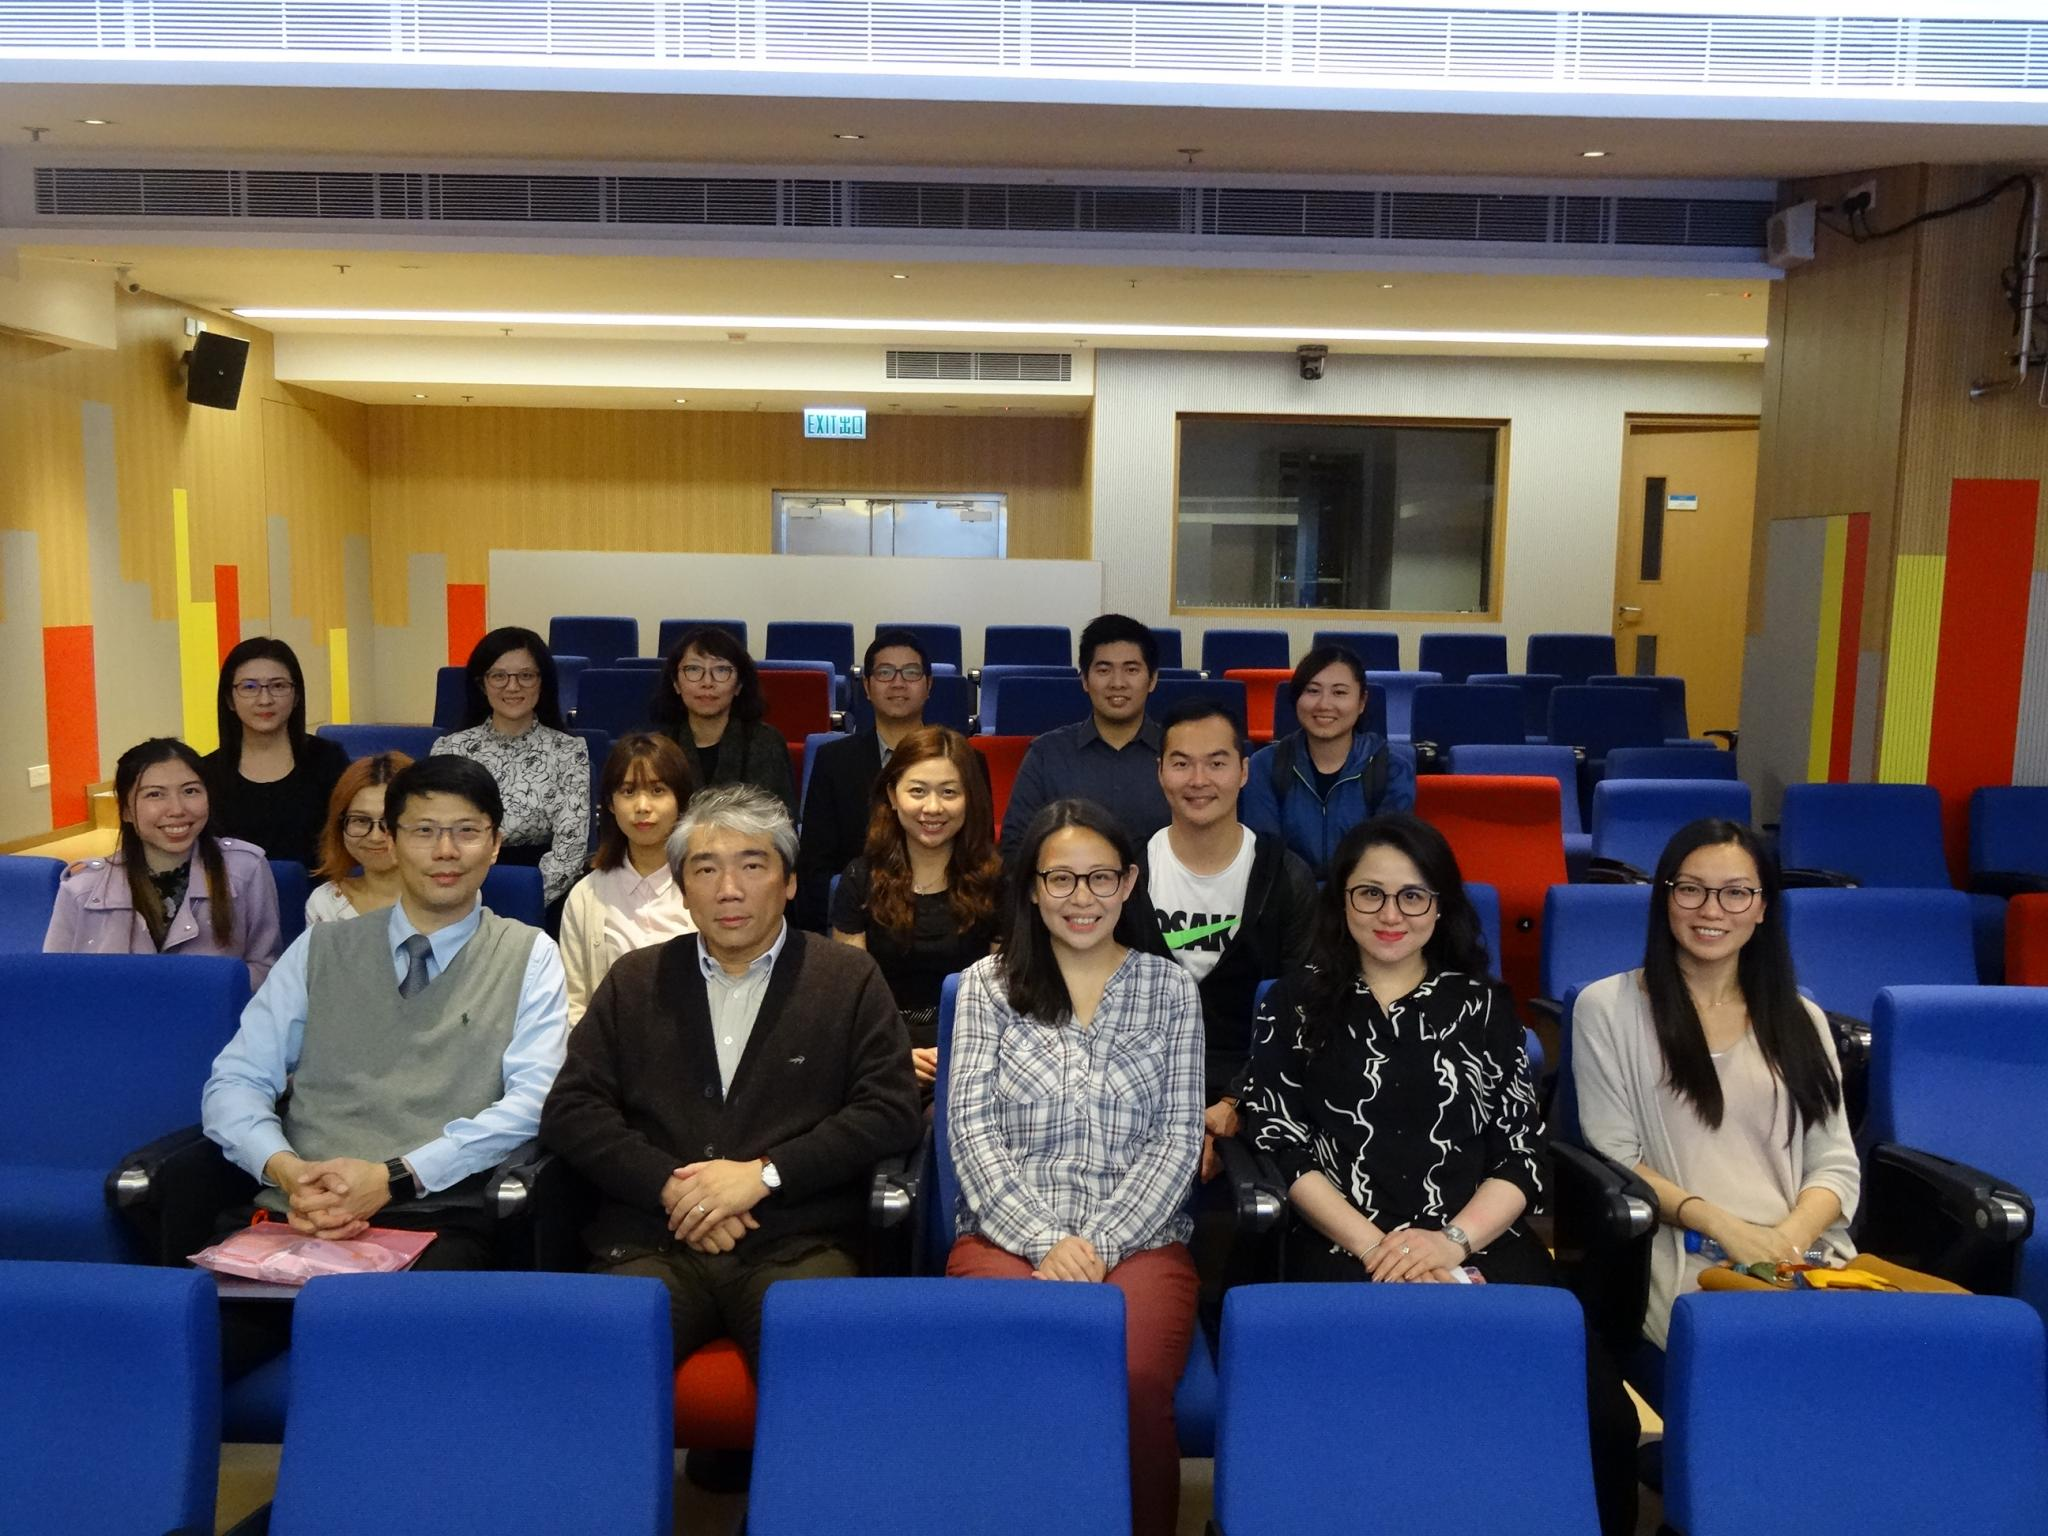 A group photo of the guest Principal and teachers.